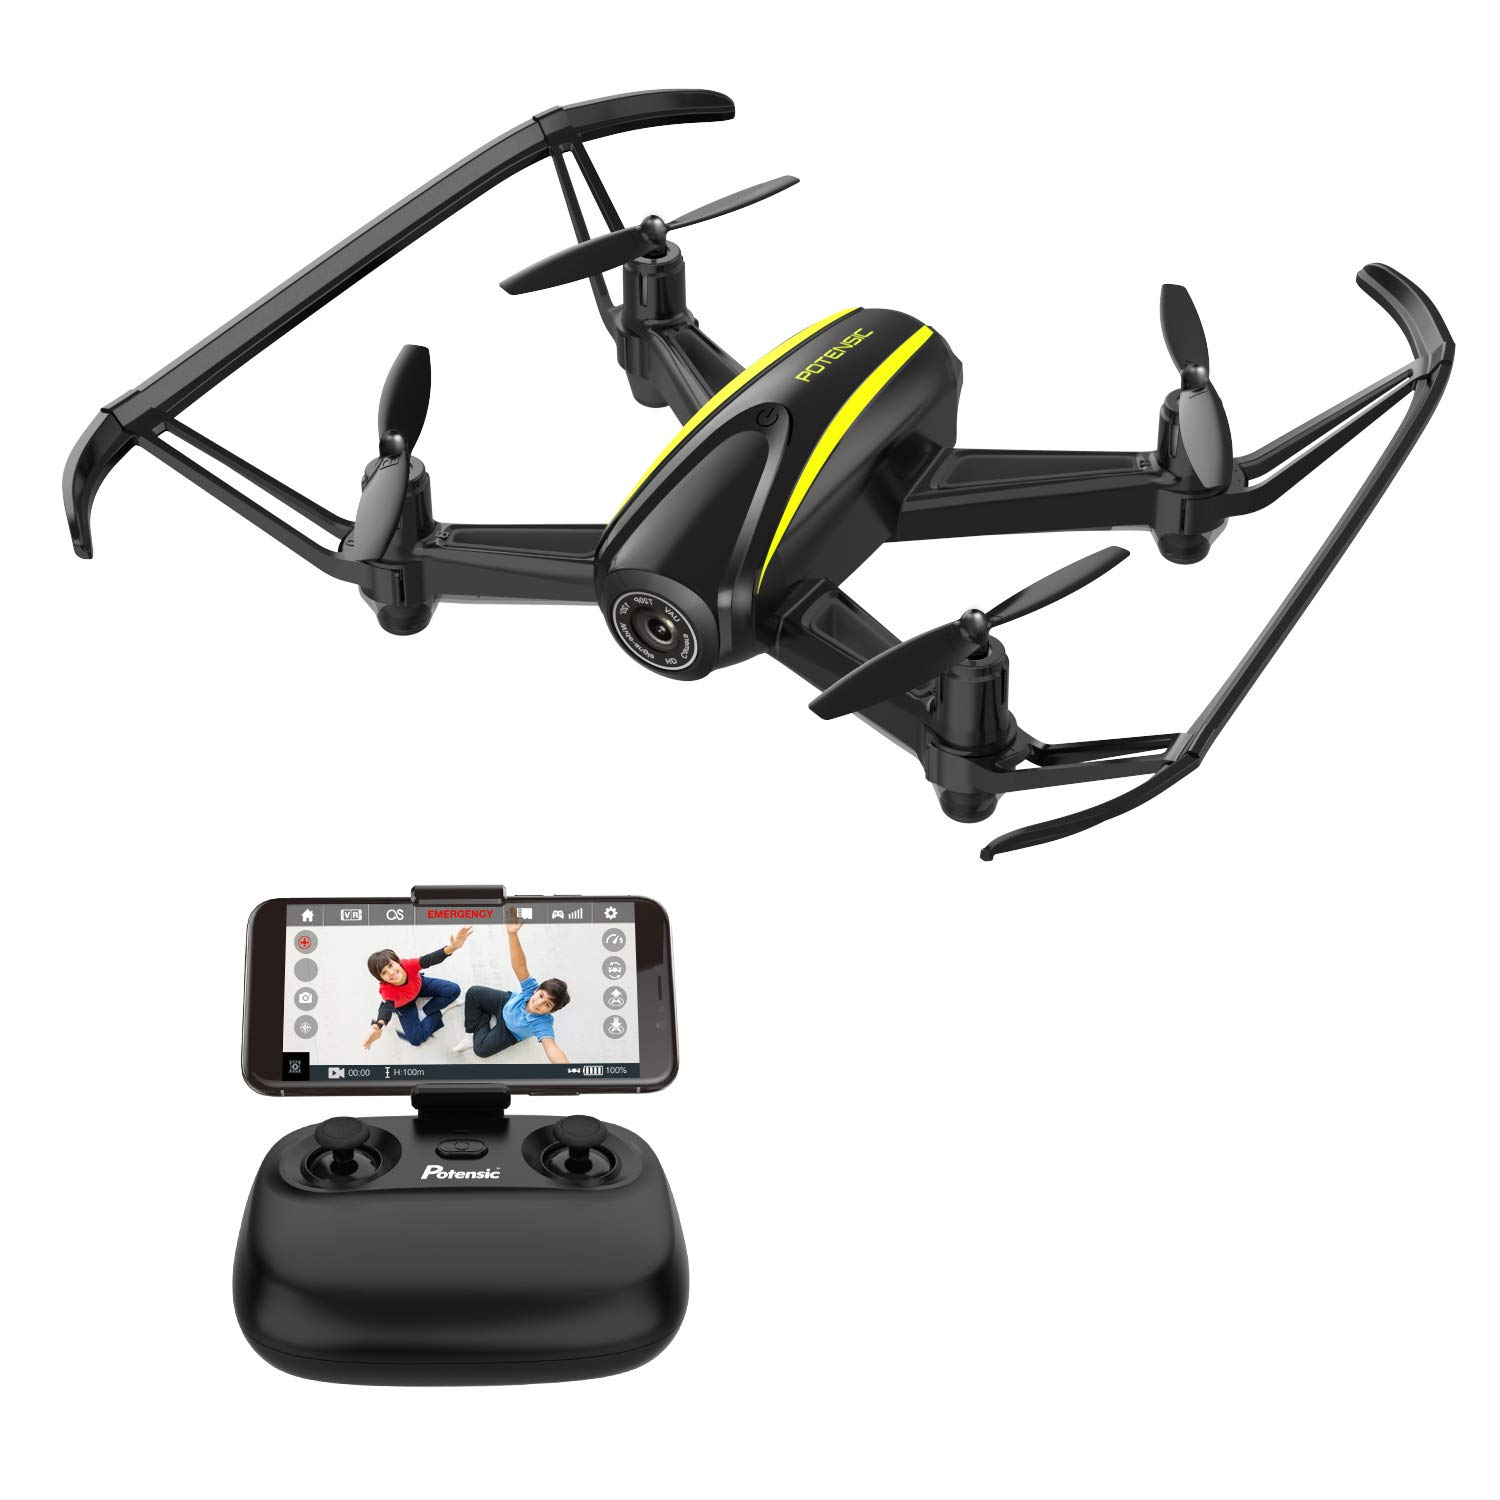 Great Drone and really tough --- It can handle the crashes!  Highly recommend.